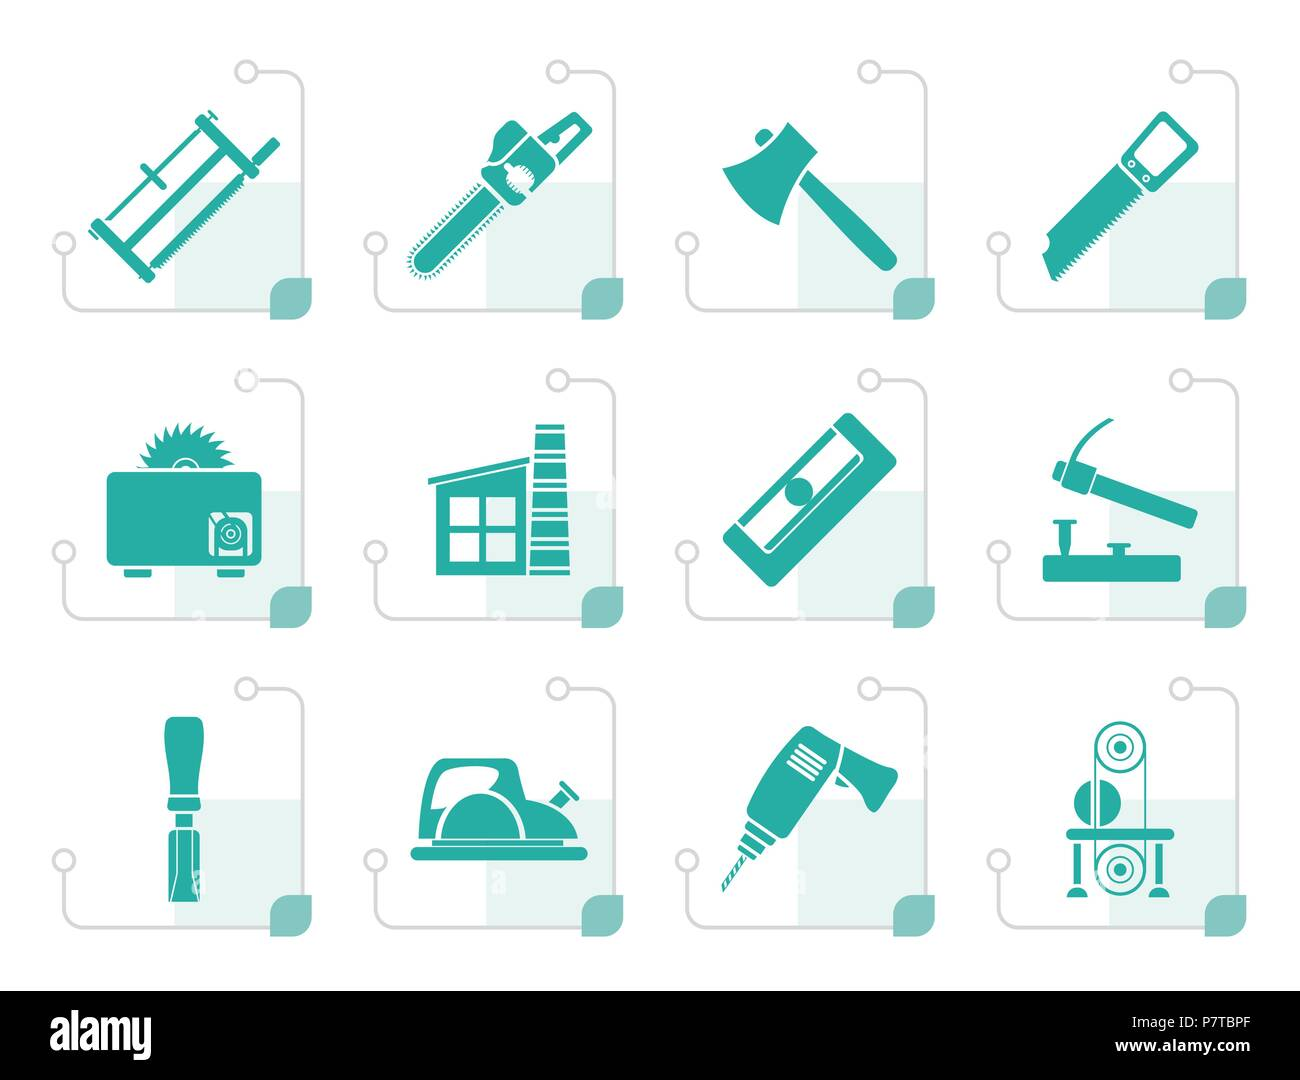 Stylized Woodworking Industry And Woodworking Tools Icons Vector